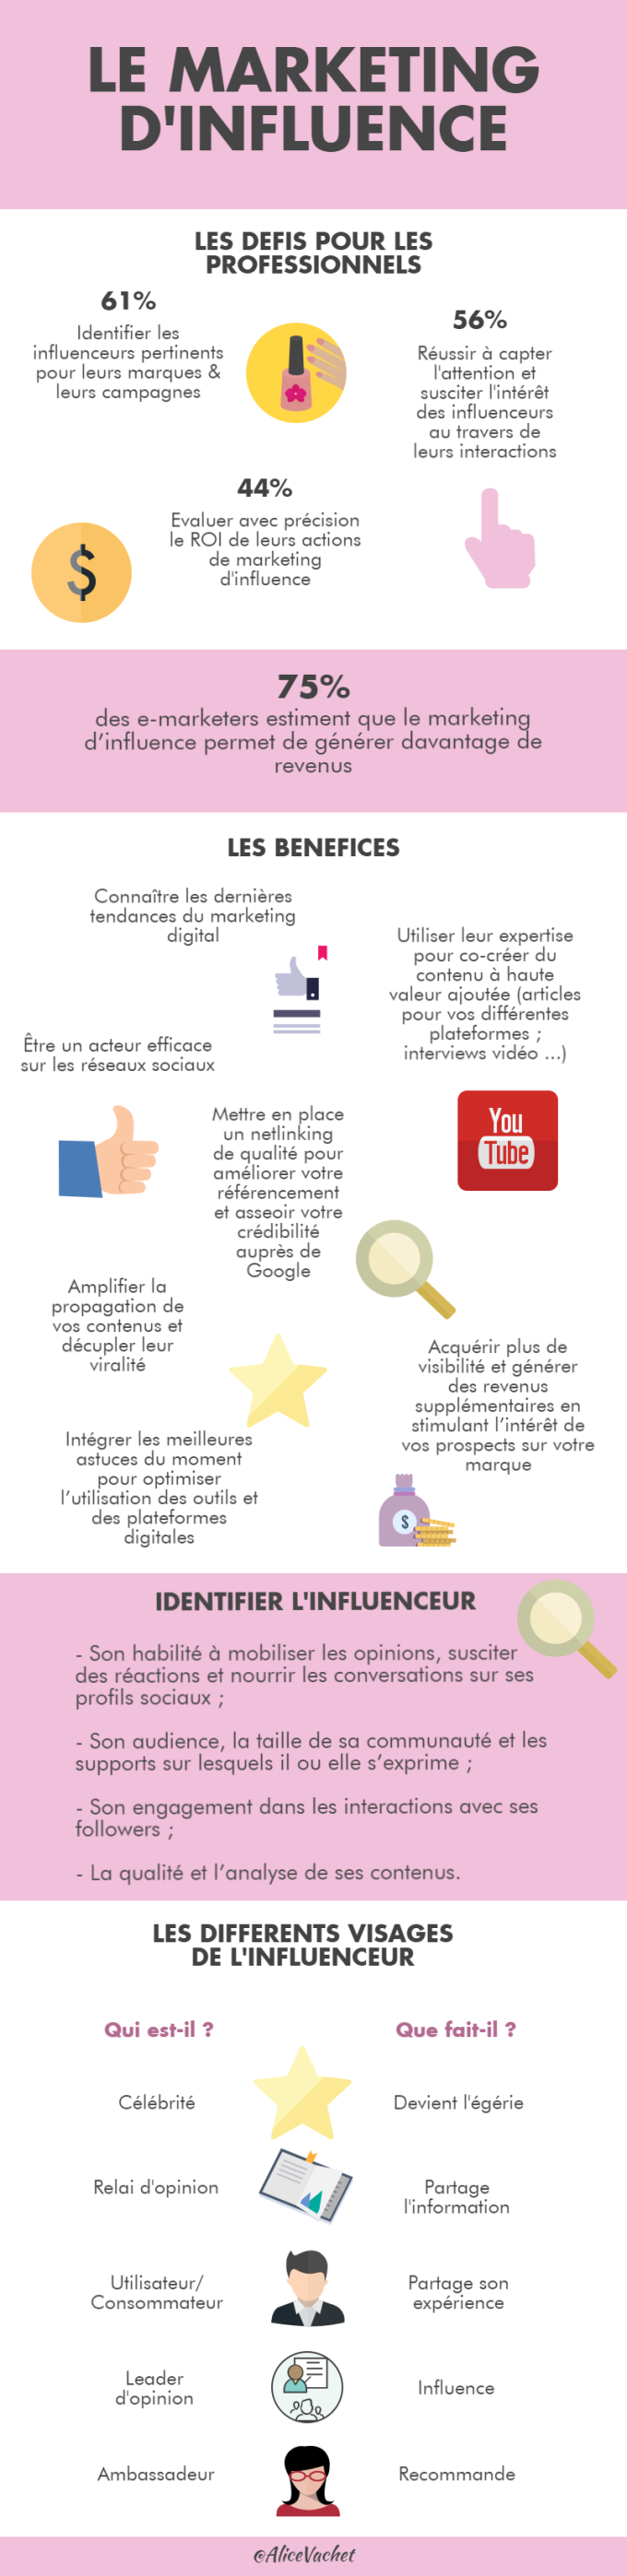 [INFOGRAPHIE] Le Marketing d'Influence